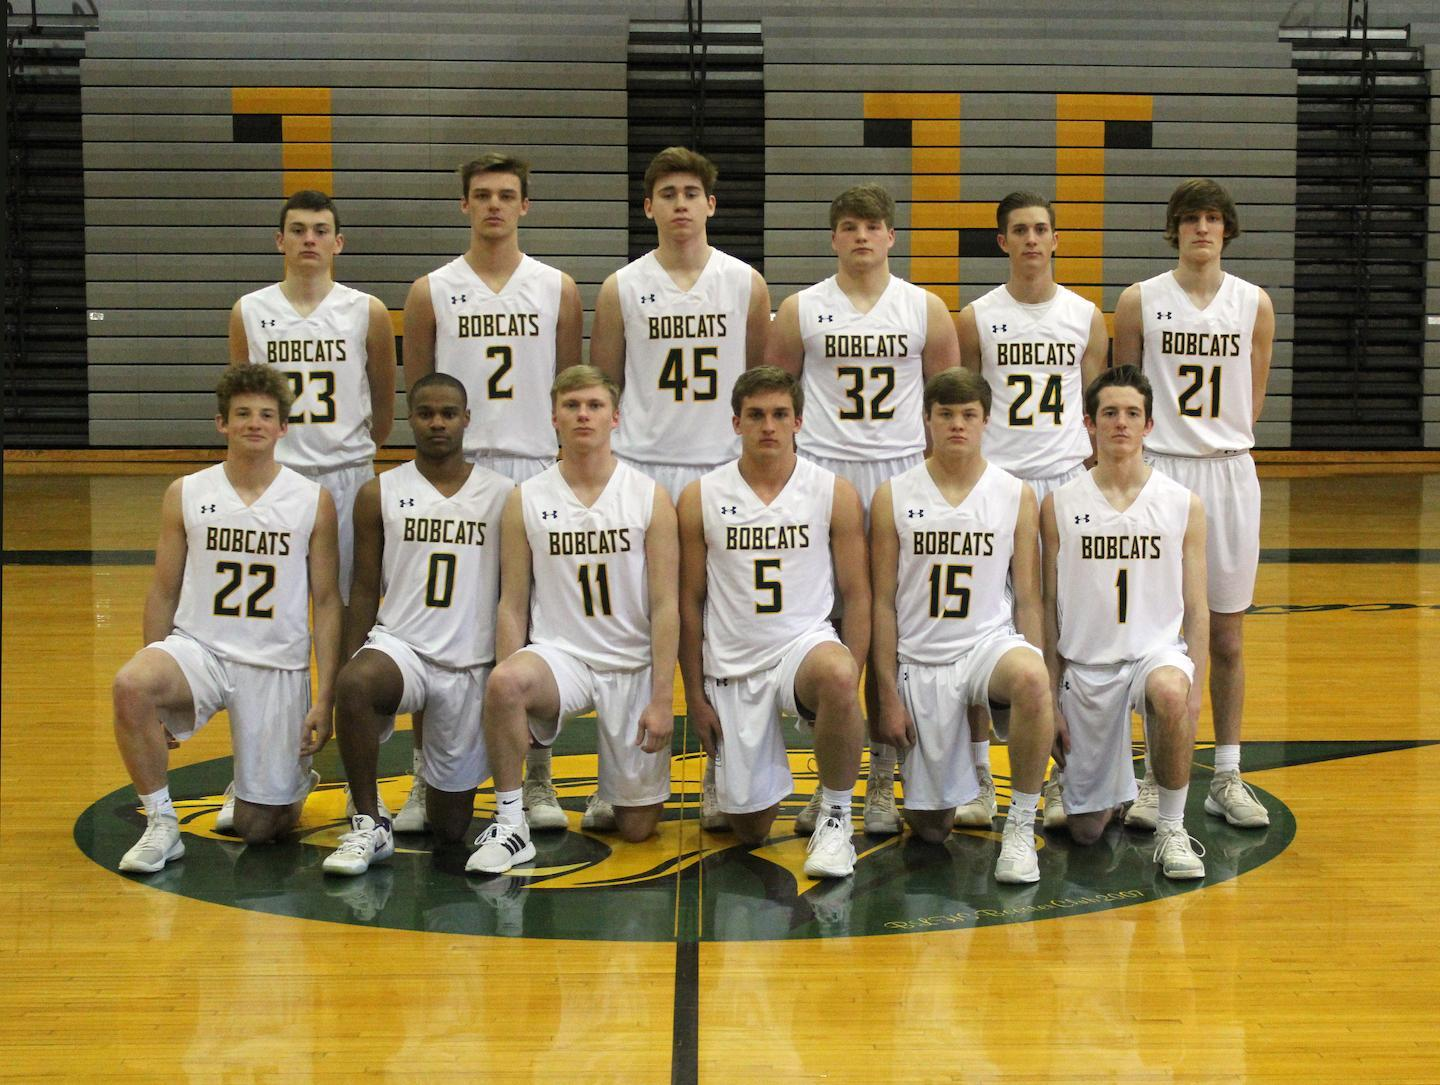 2019 BLHS Men's Basketball Group Photo